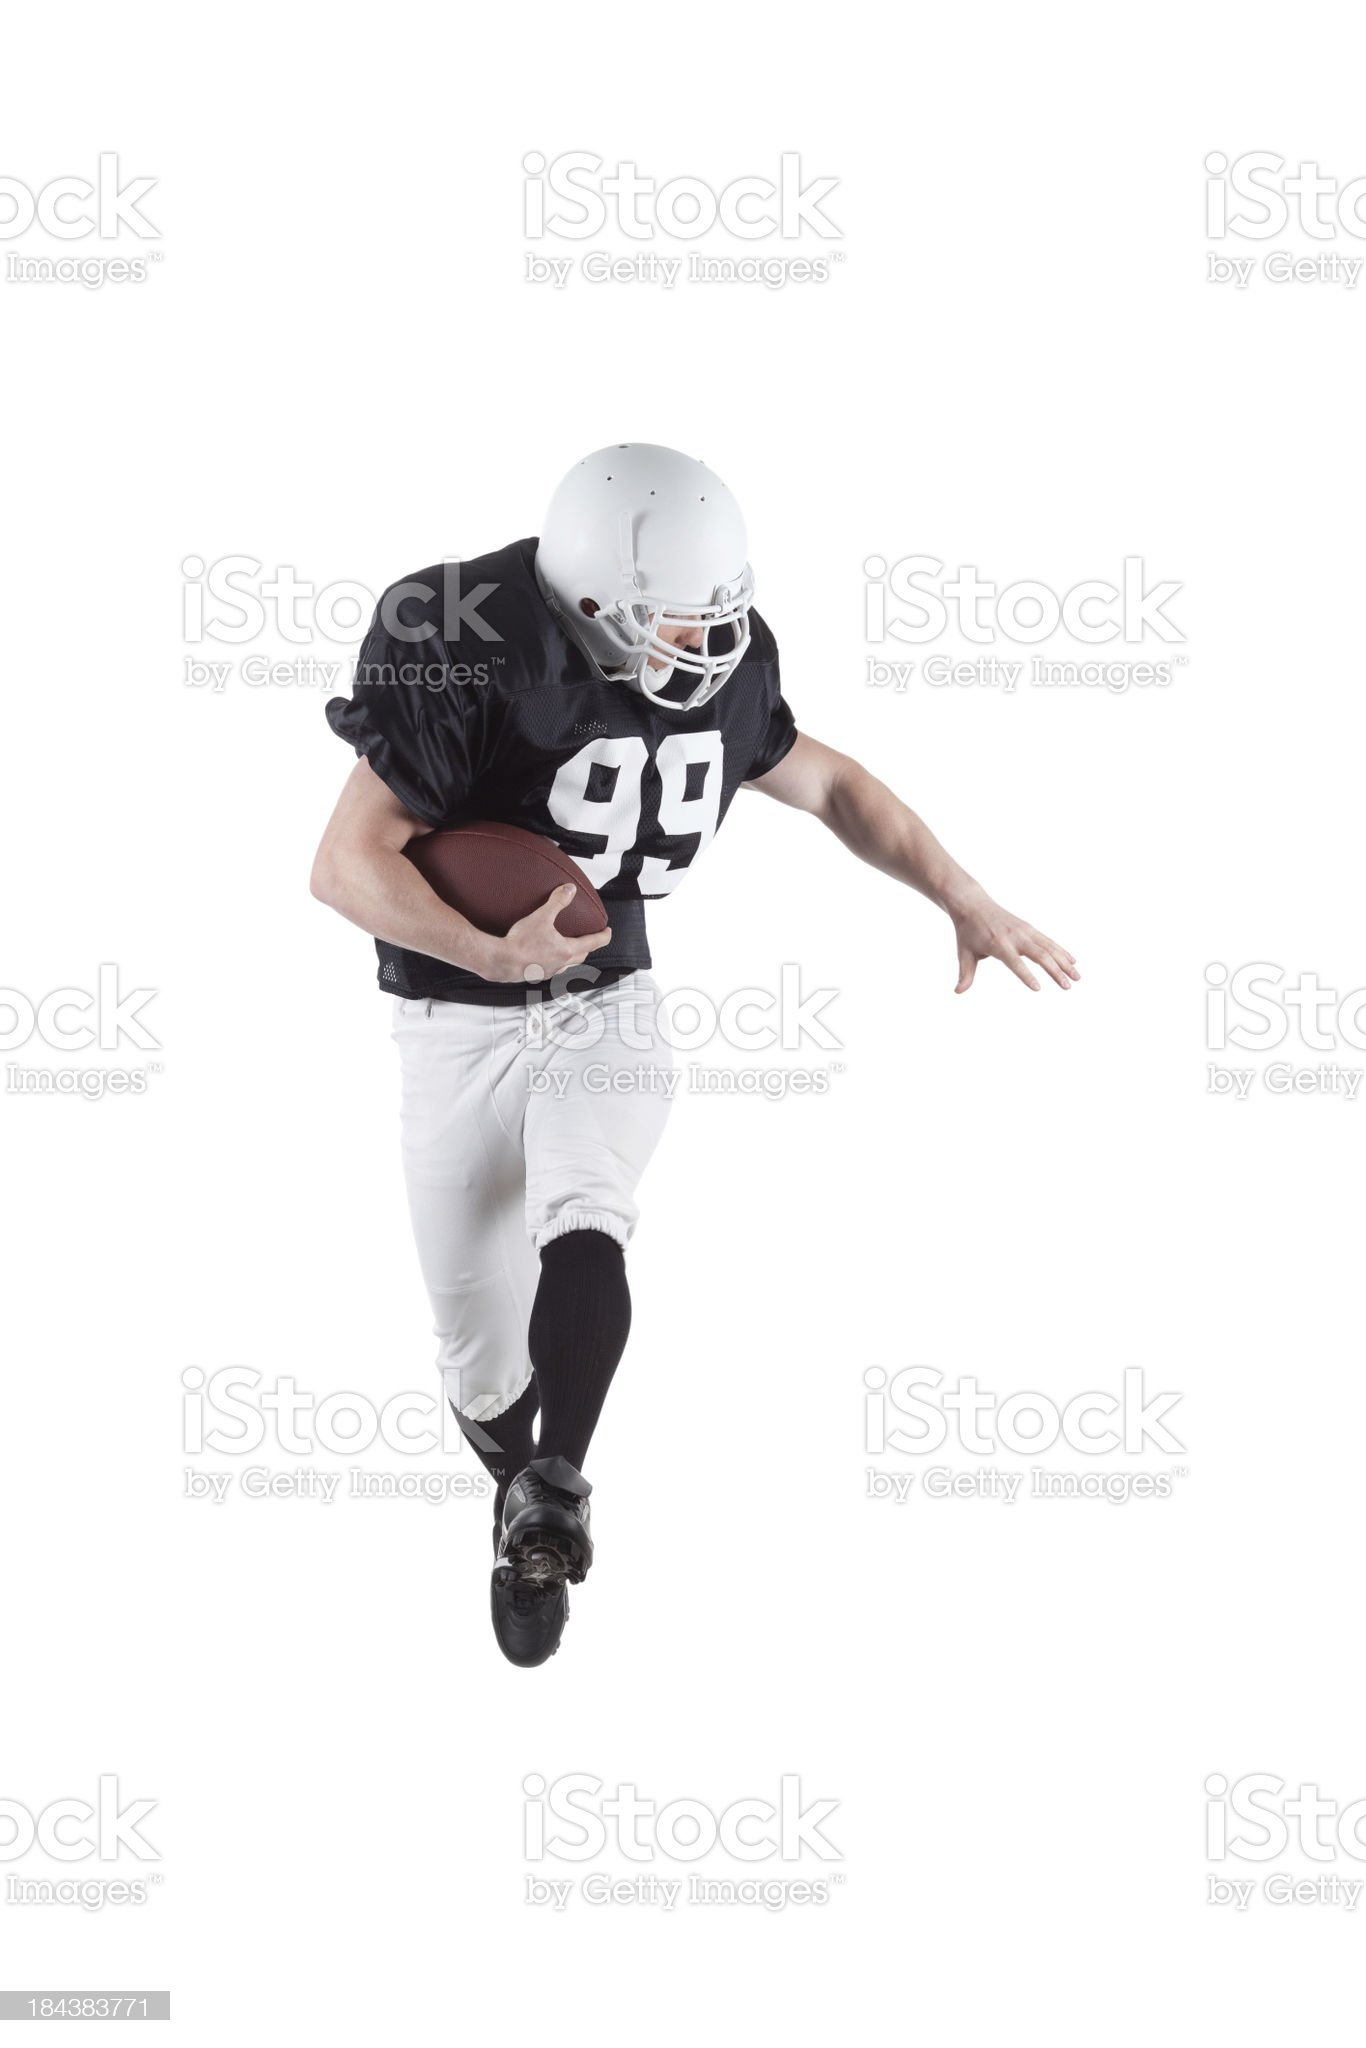 American football player carrying a rugby royalty-free stock photo